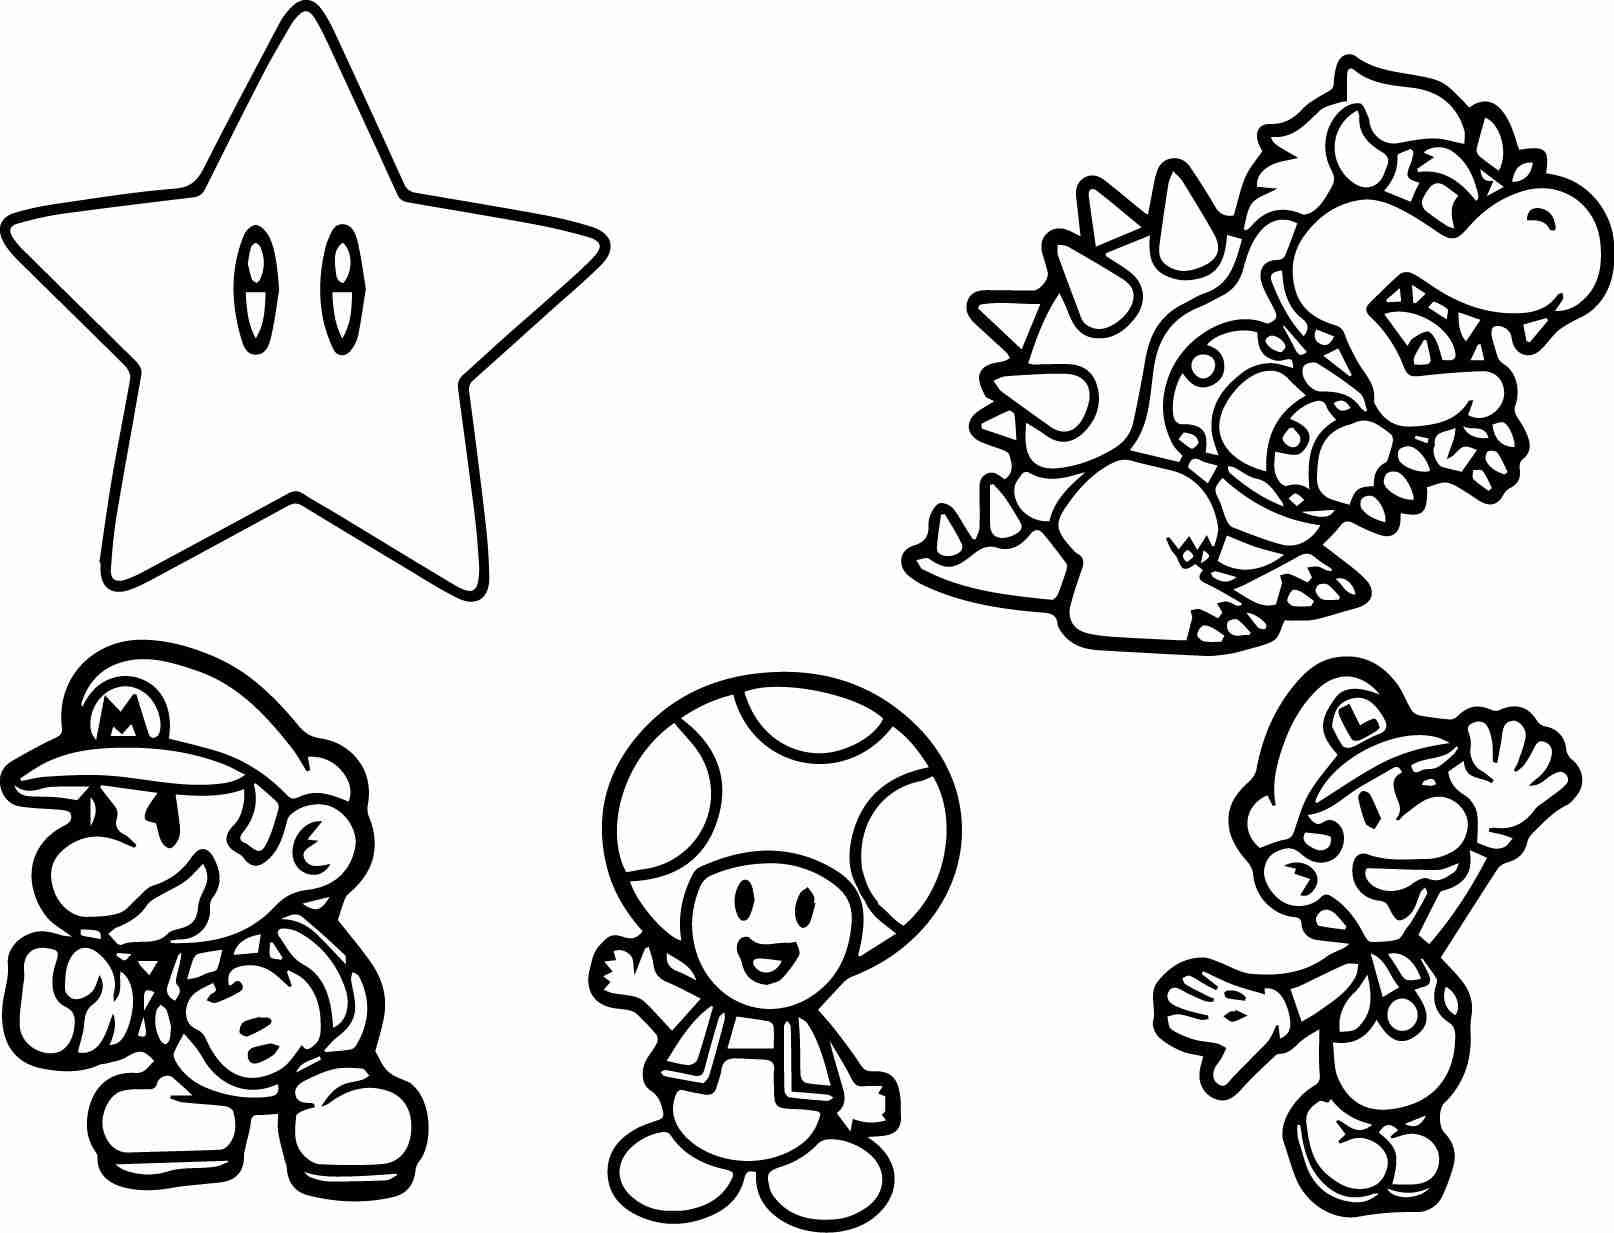 Super Mario Characters Coloring Pages at GetColorings.com